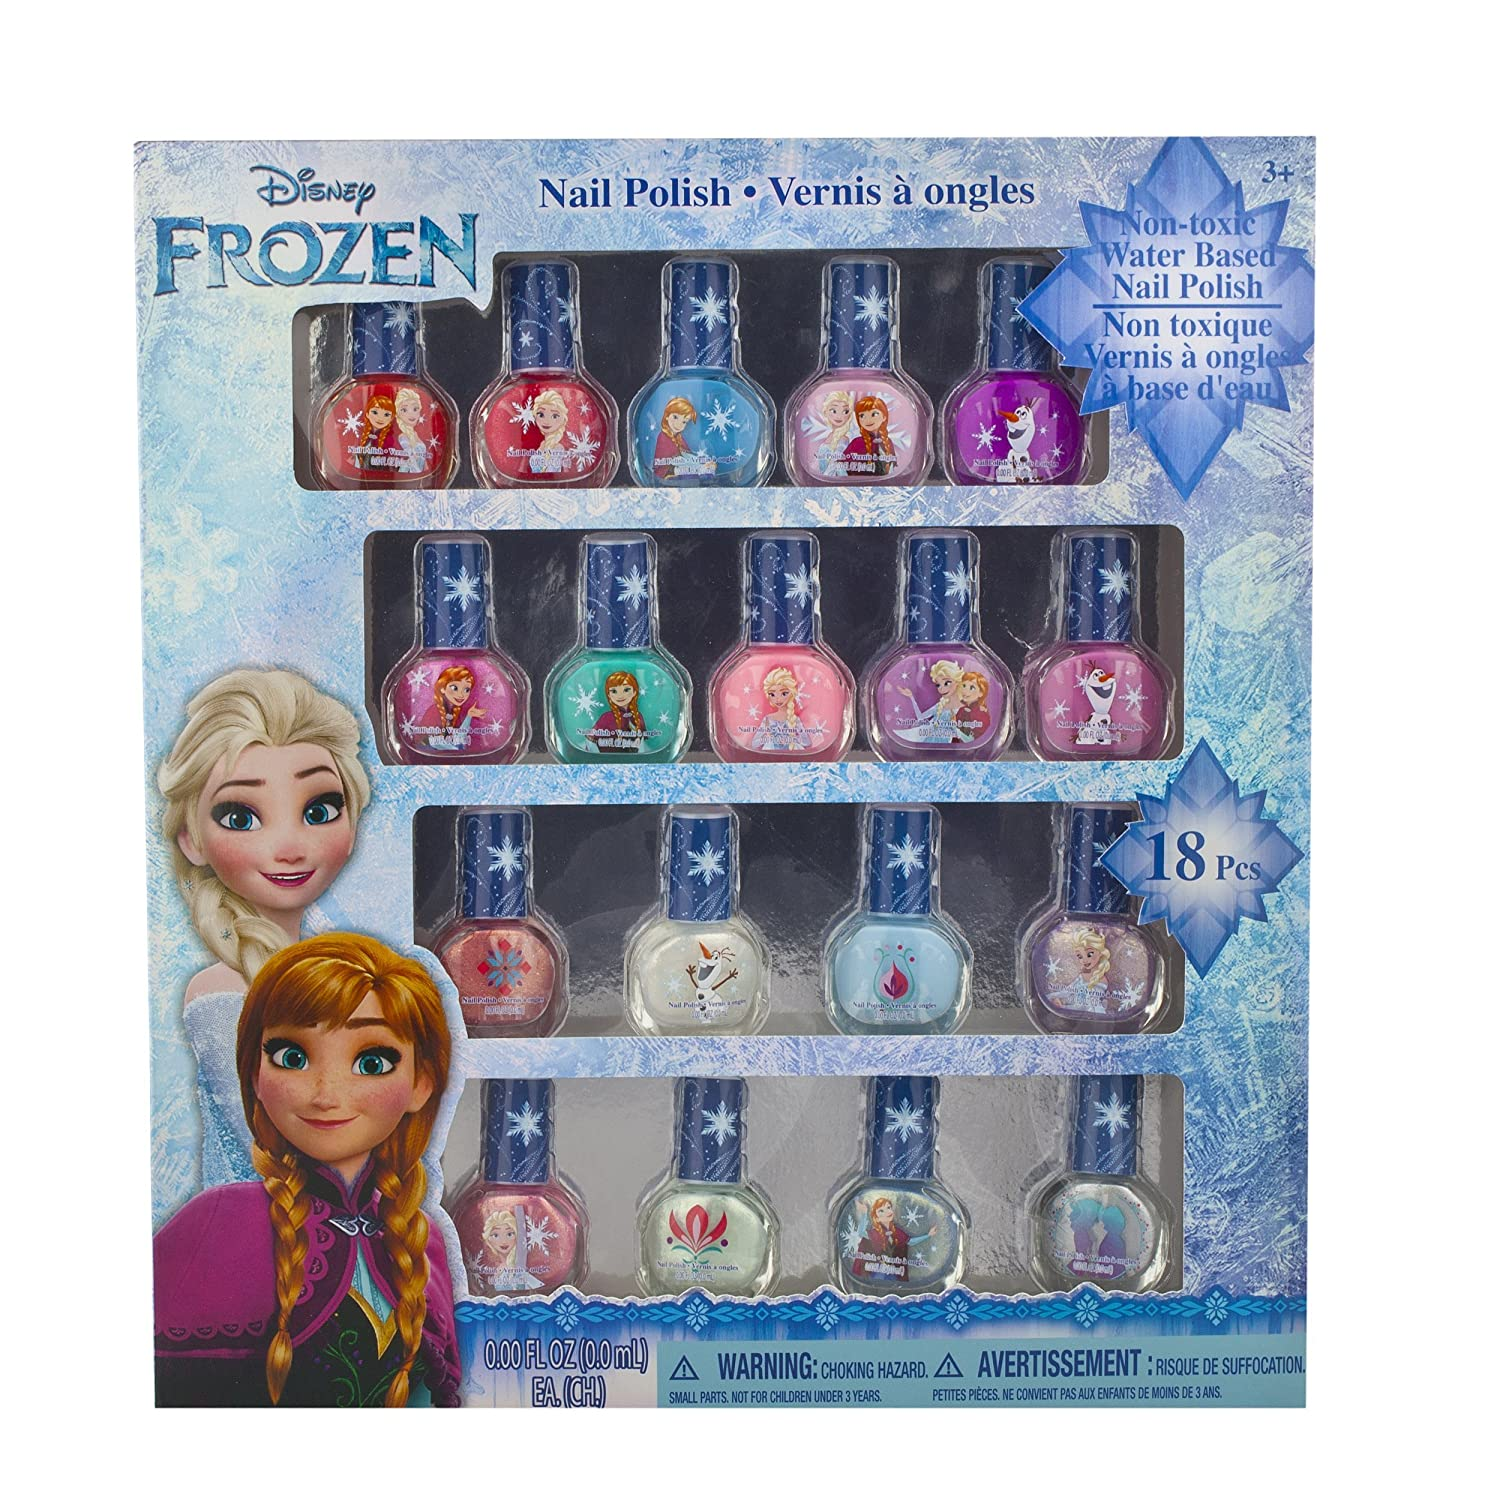 Amazon.com : Frozen Non-Toxic 18 Piece Peel Off Nail Polish Set : Beauty